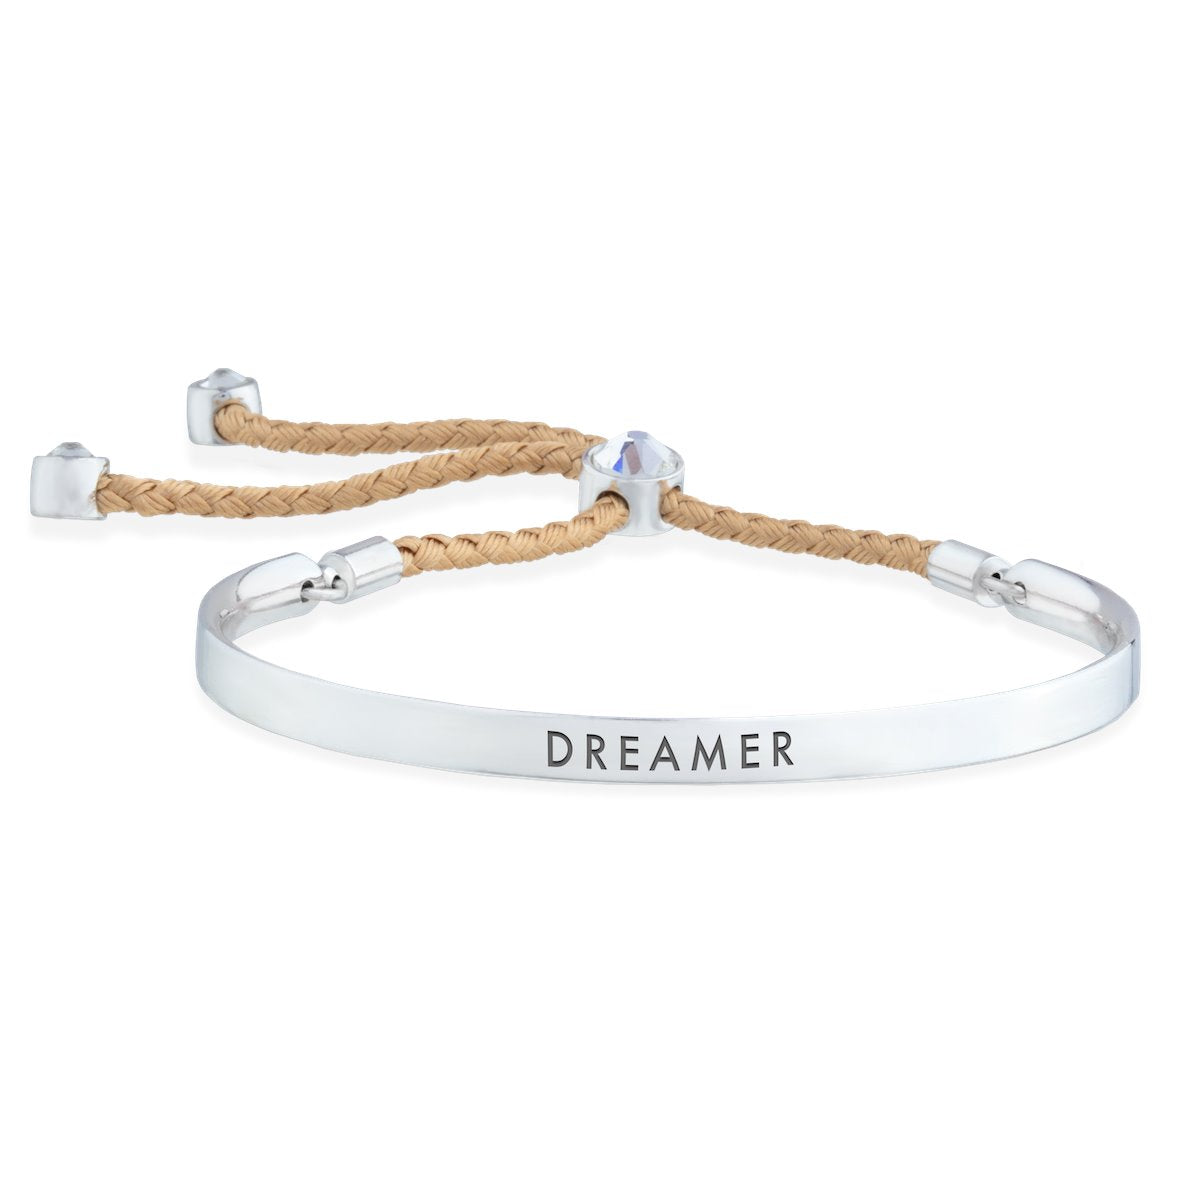 Dreamer – Words of Empowerment Bracelet forevercrystals